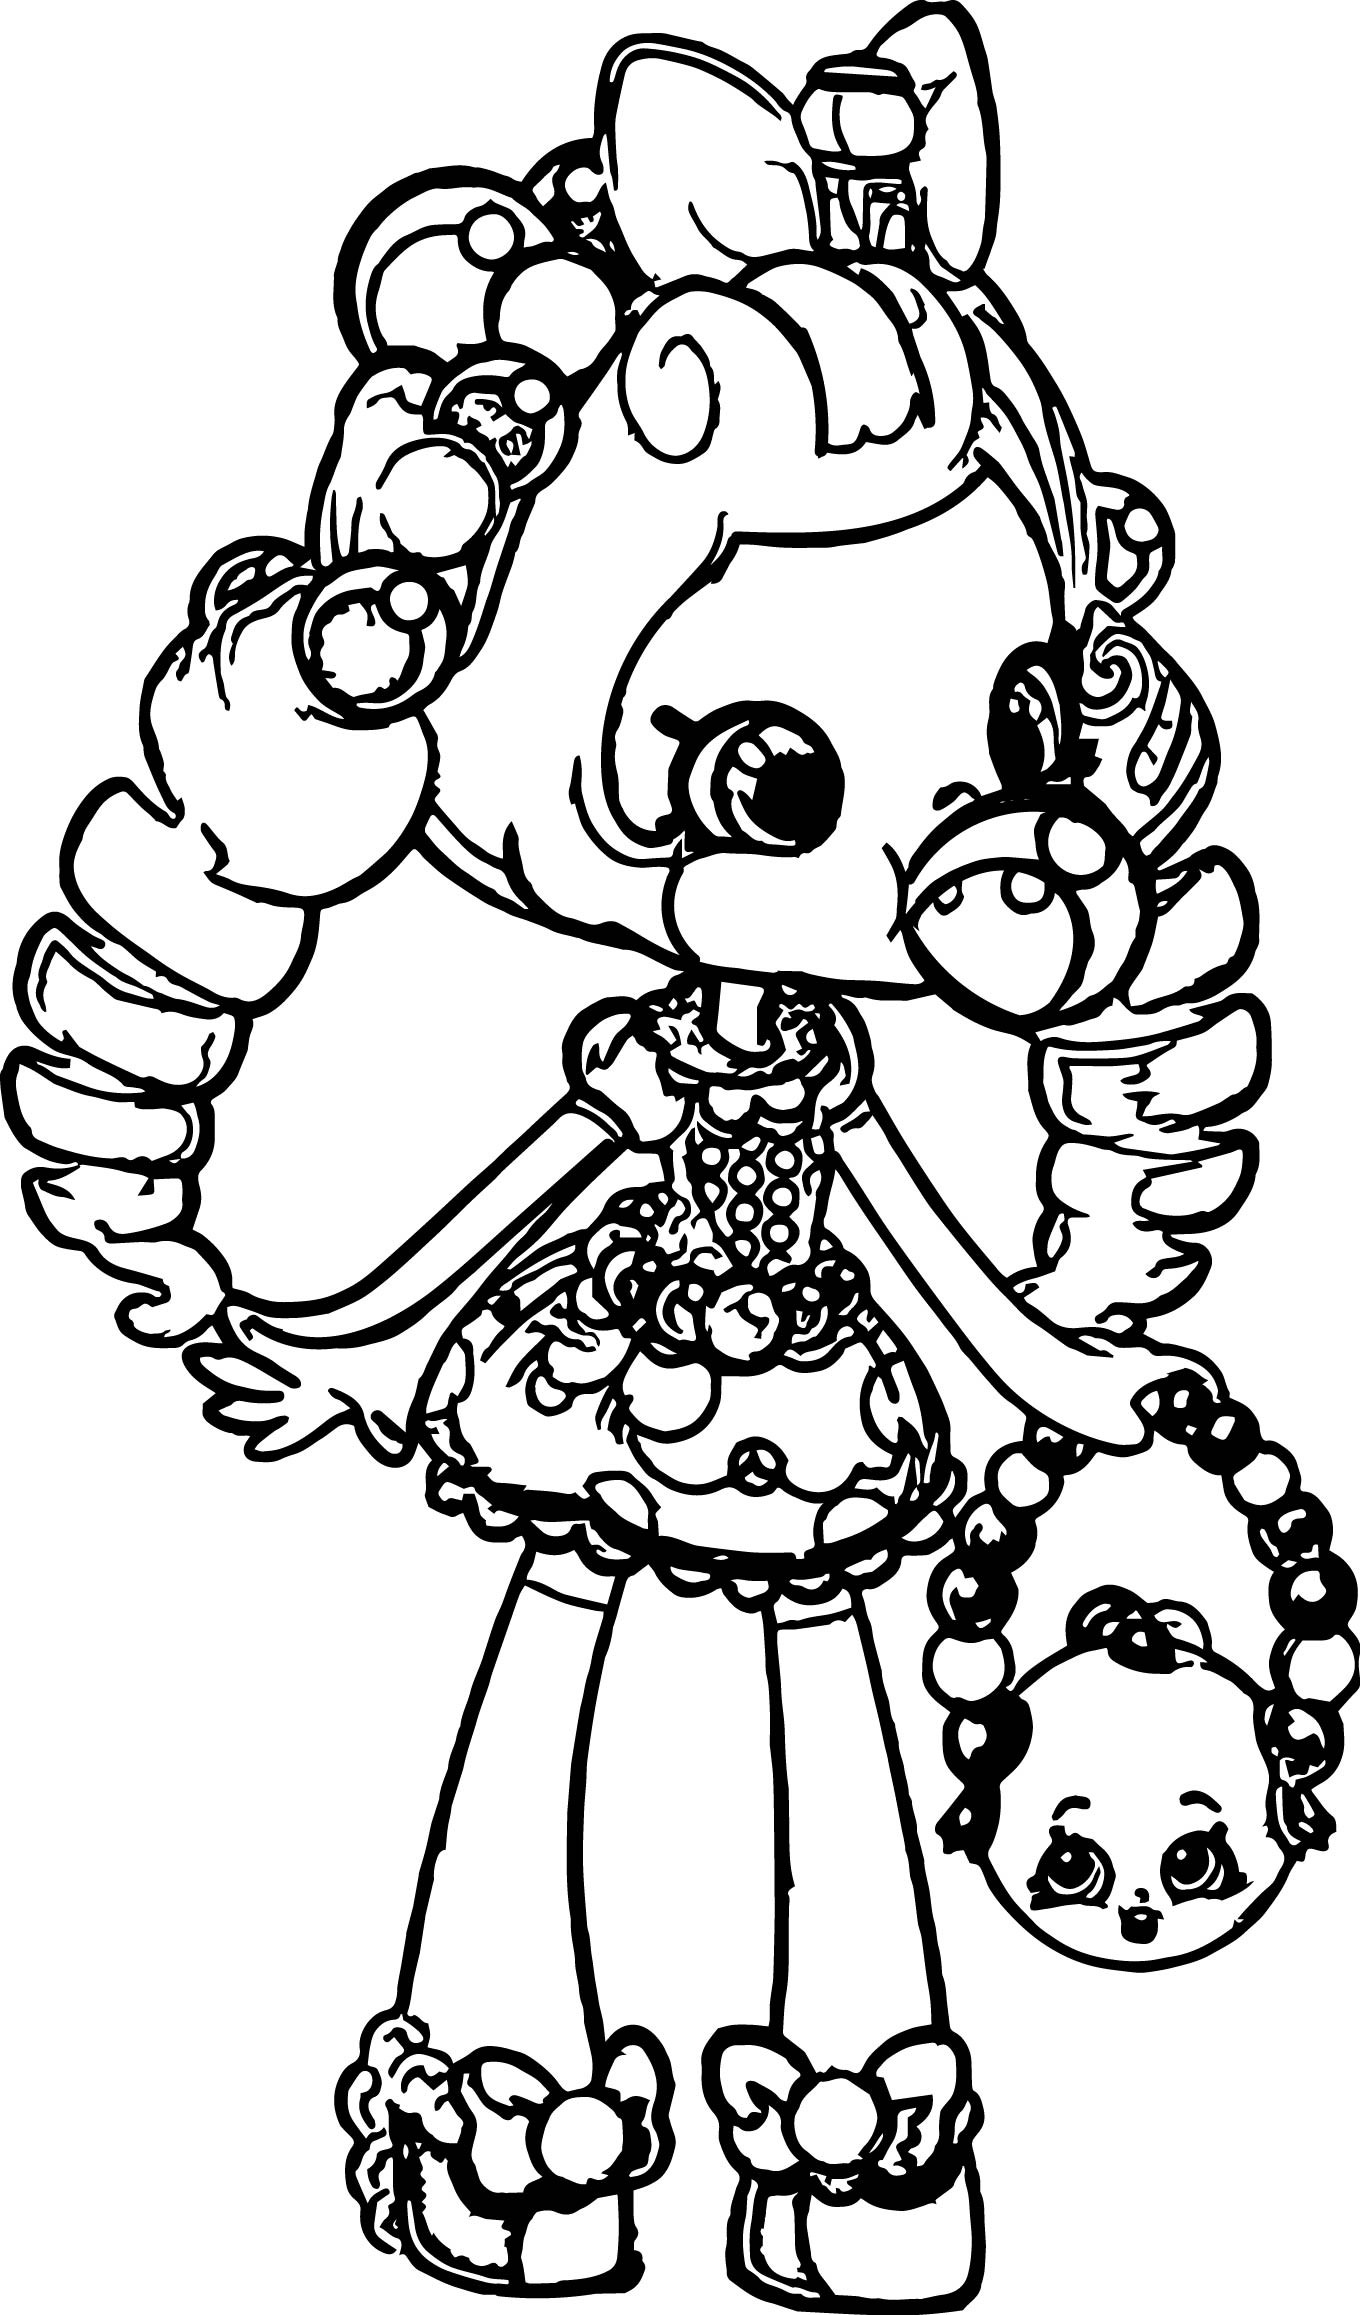 Coloring Pages For Girls Shopkins Apple  Shopkins Coloring Pages For Girls Download 9 Shopkins